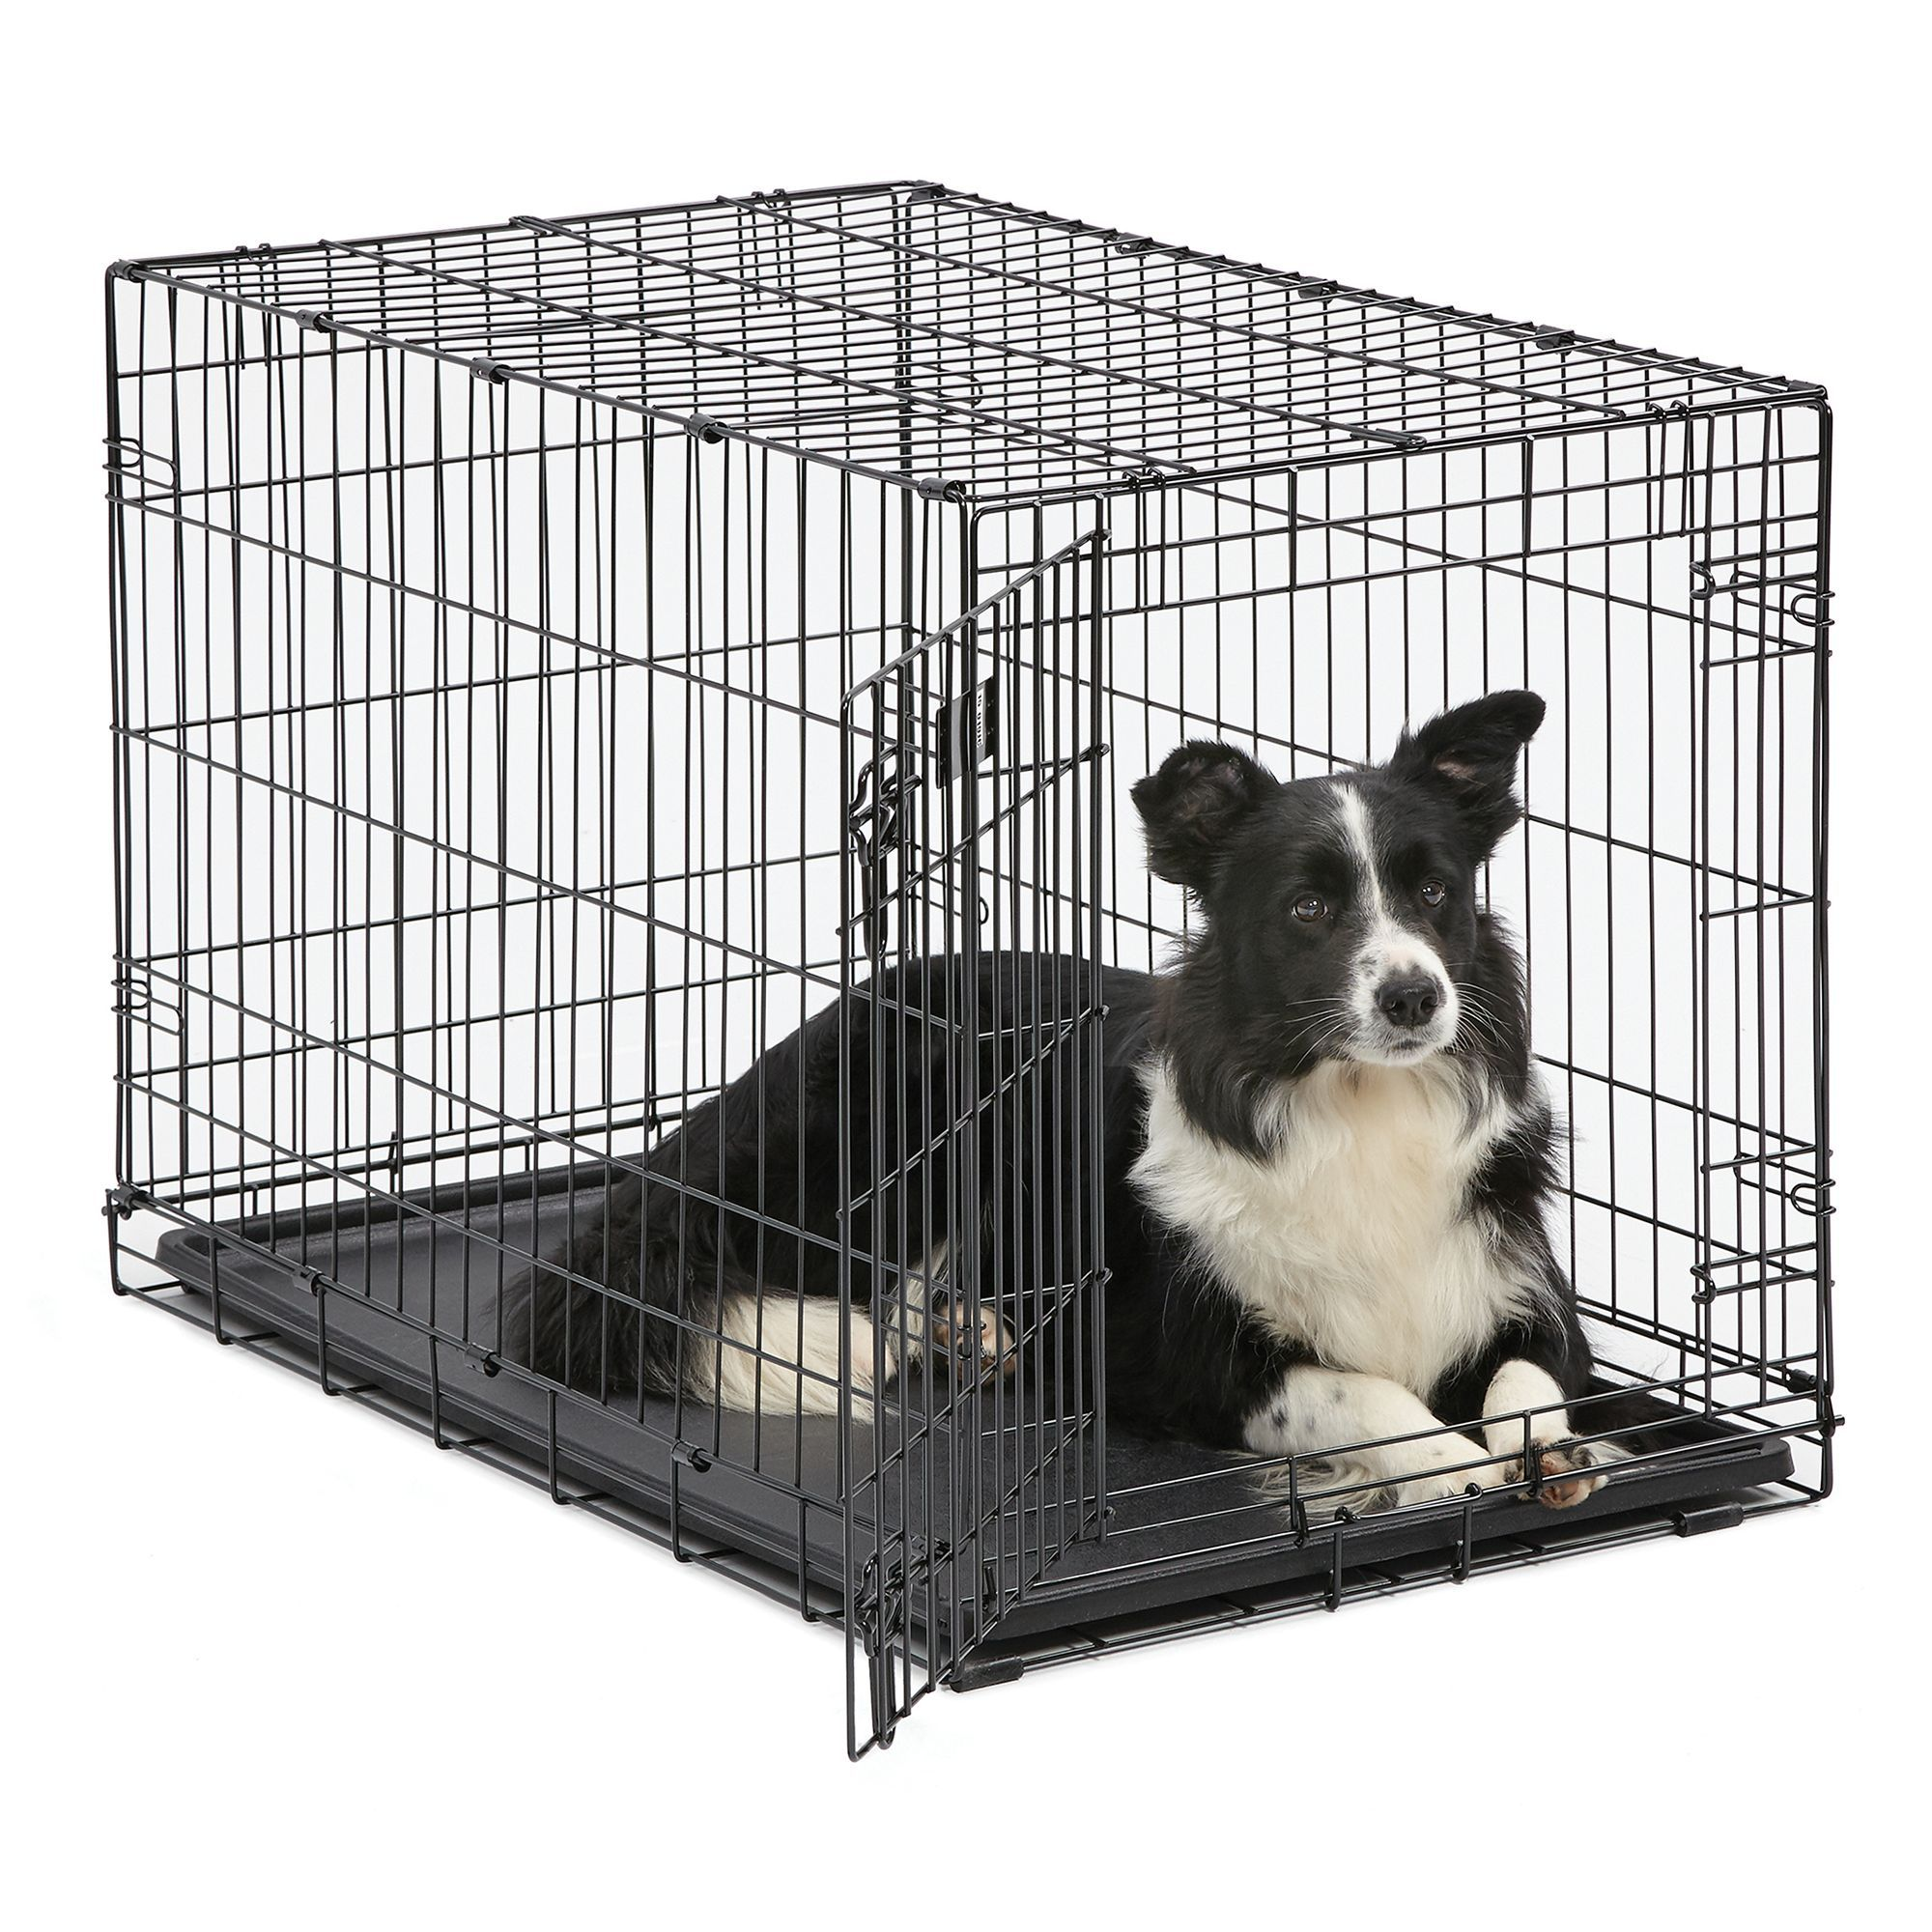 Midwest Icrate Dog Crate Size 36 L X 23 W X 25 H Black